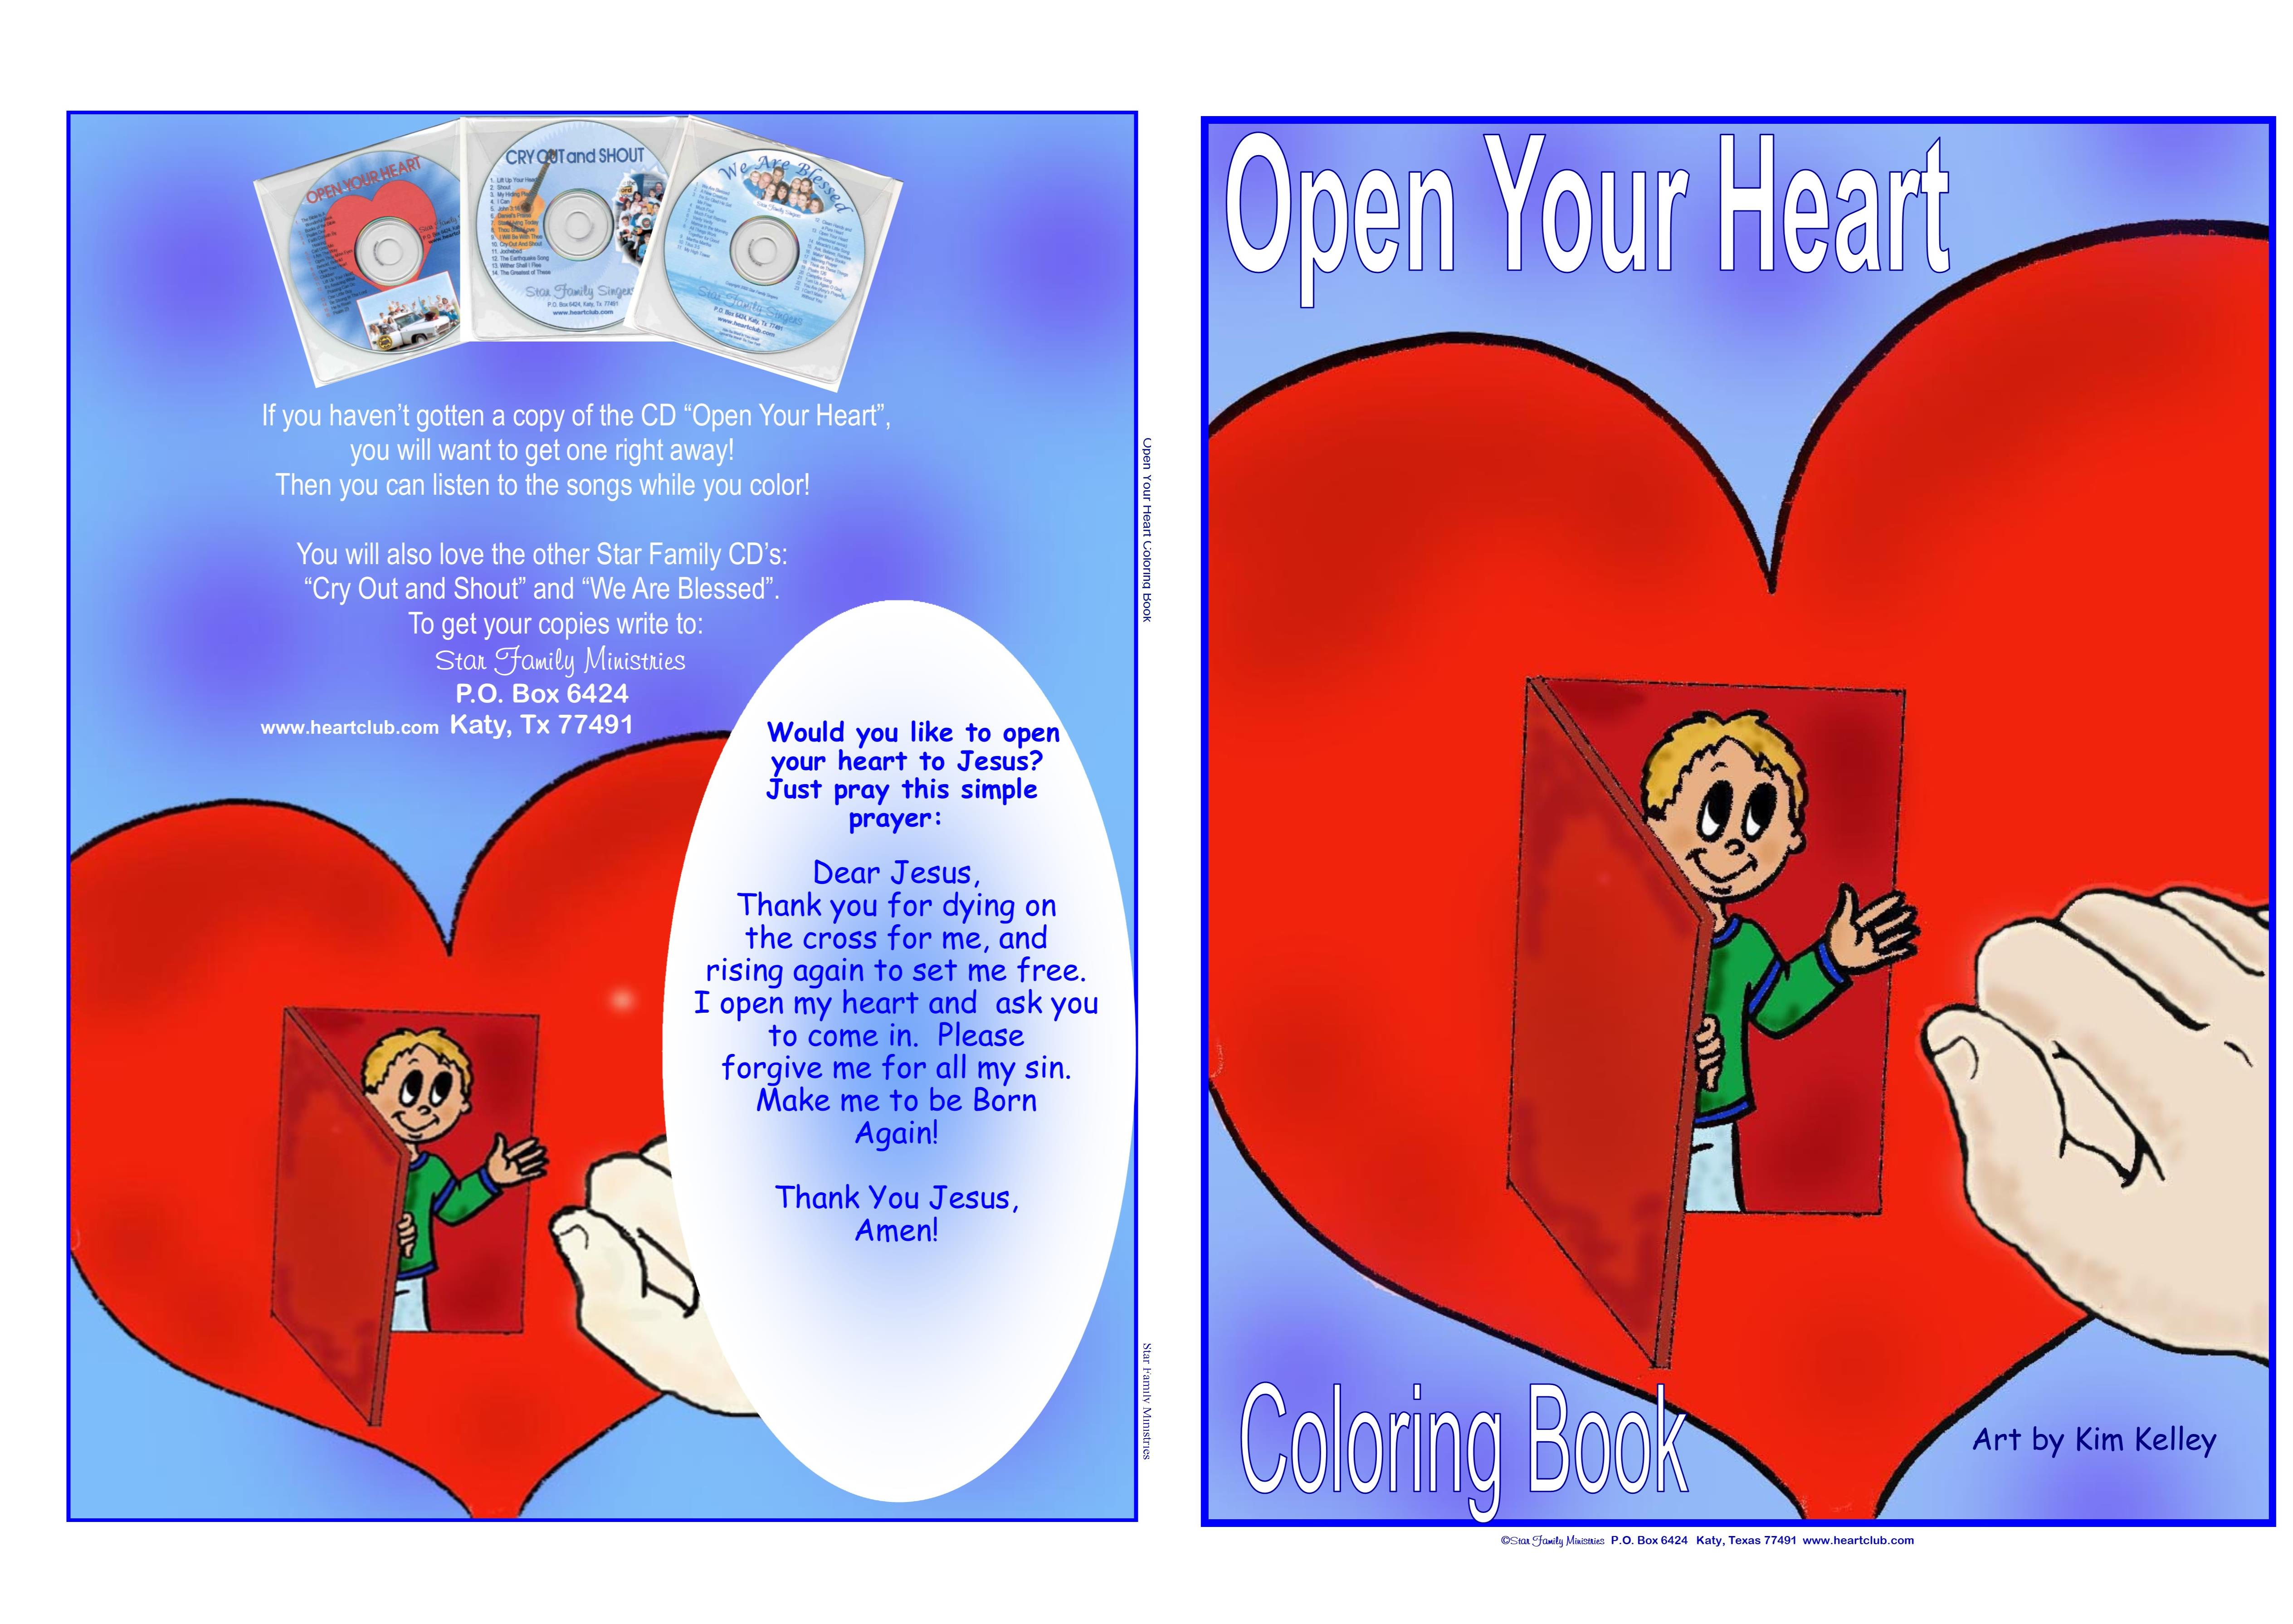 Open Your Heart Coloring Book cover image